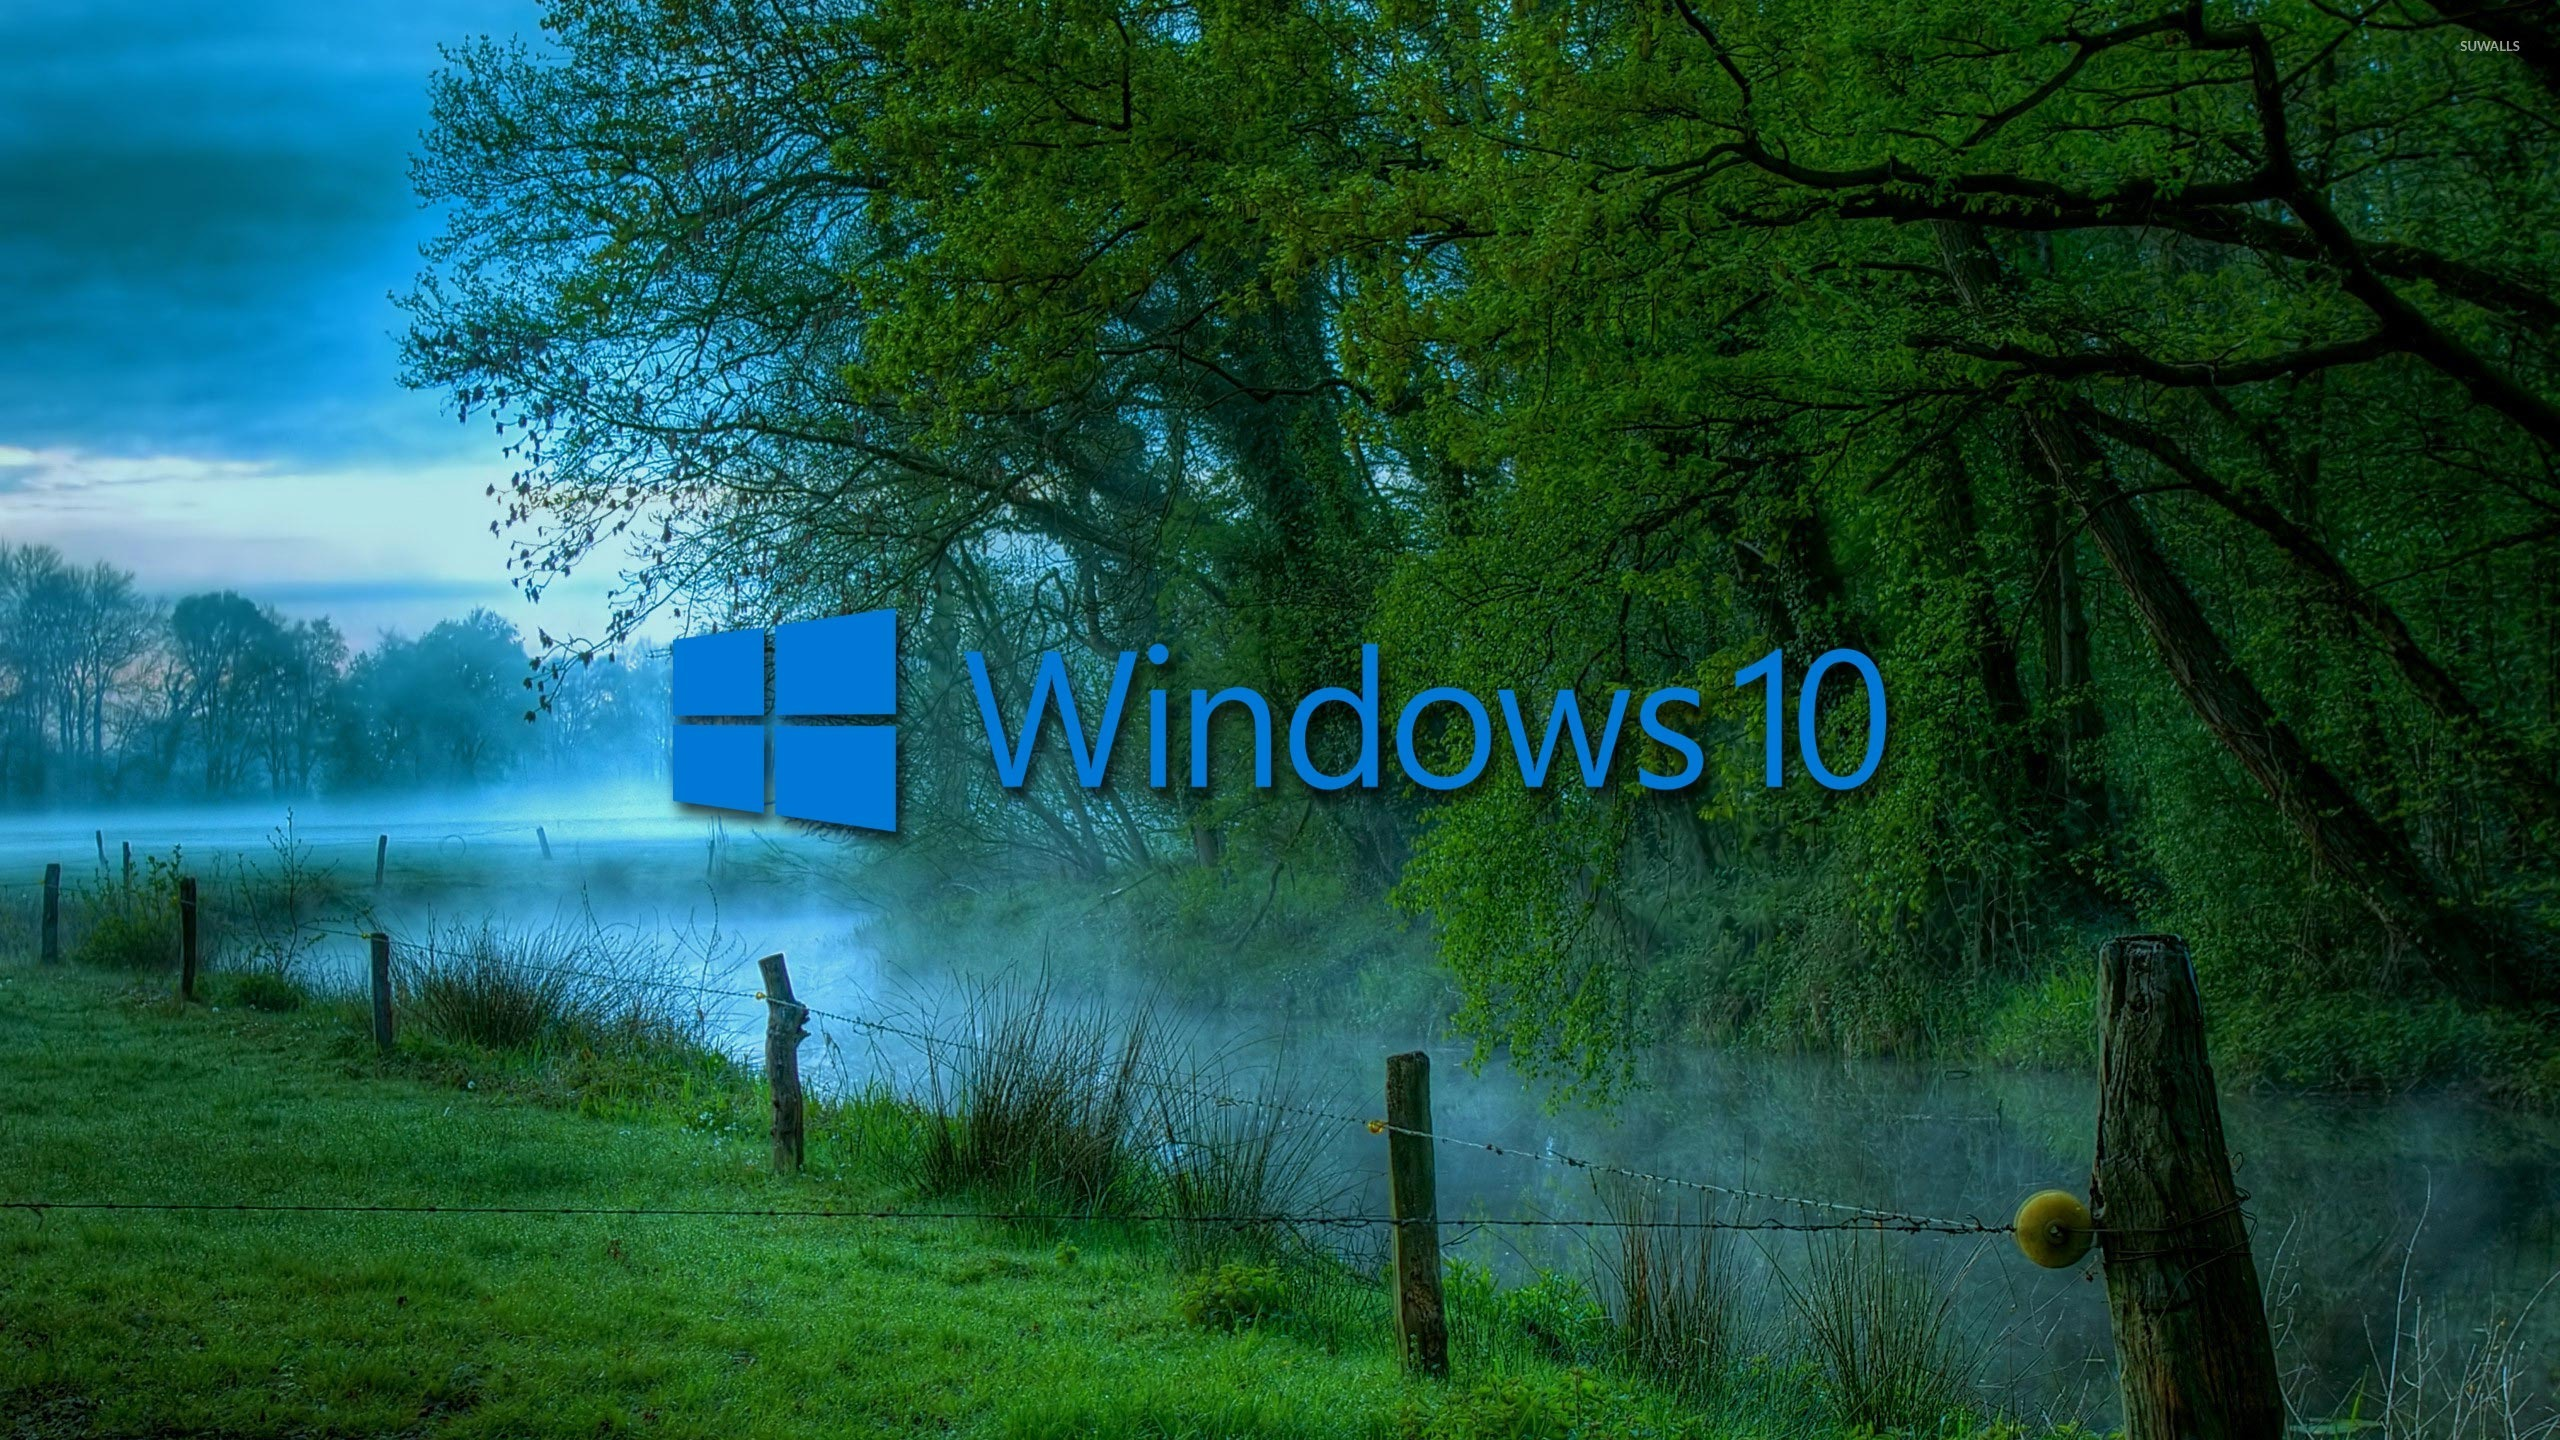 Windows 10 In The Misty Morning Blue Text Logo Wallpaper